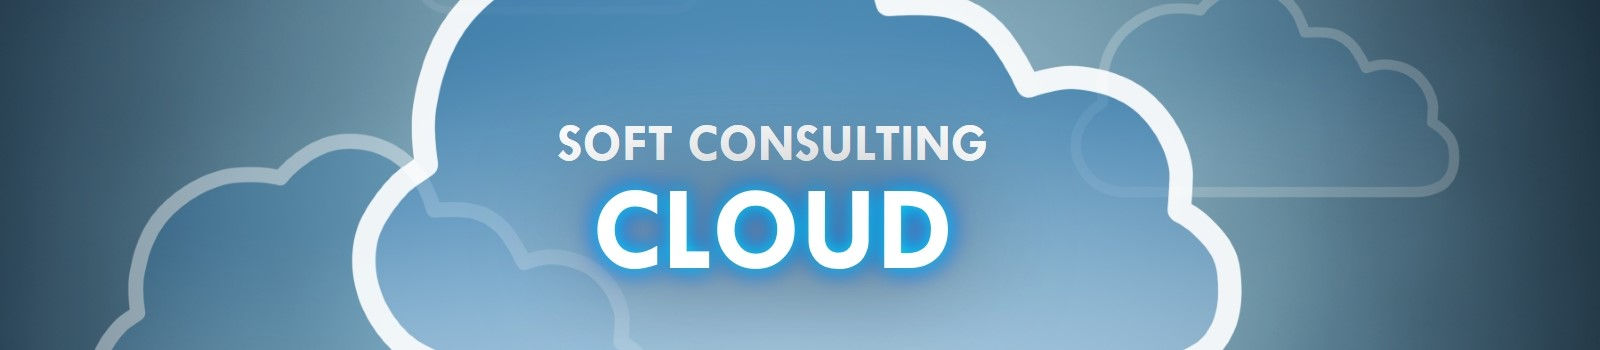 Soft Consulting Cloud